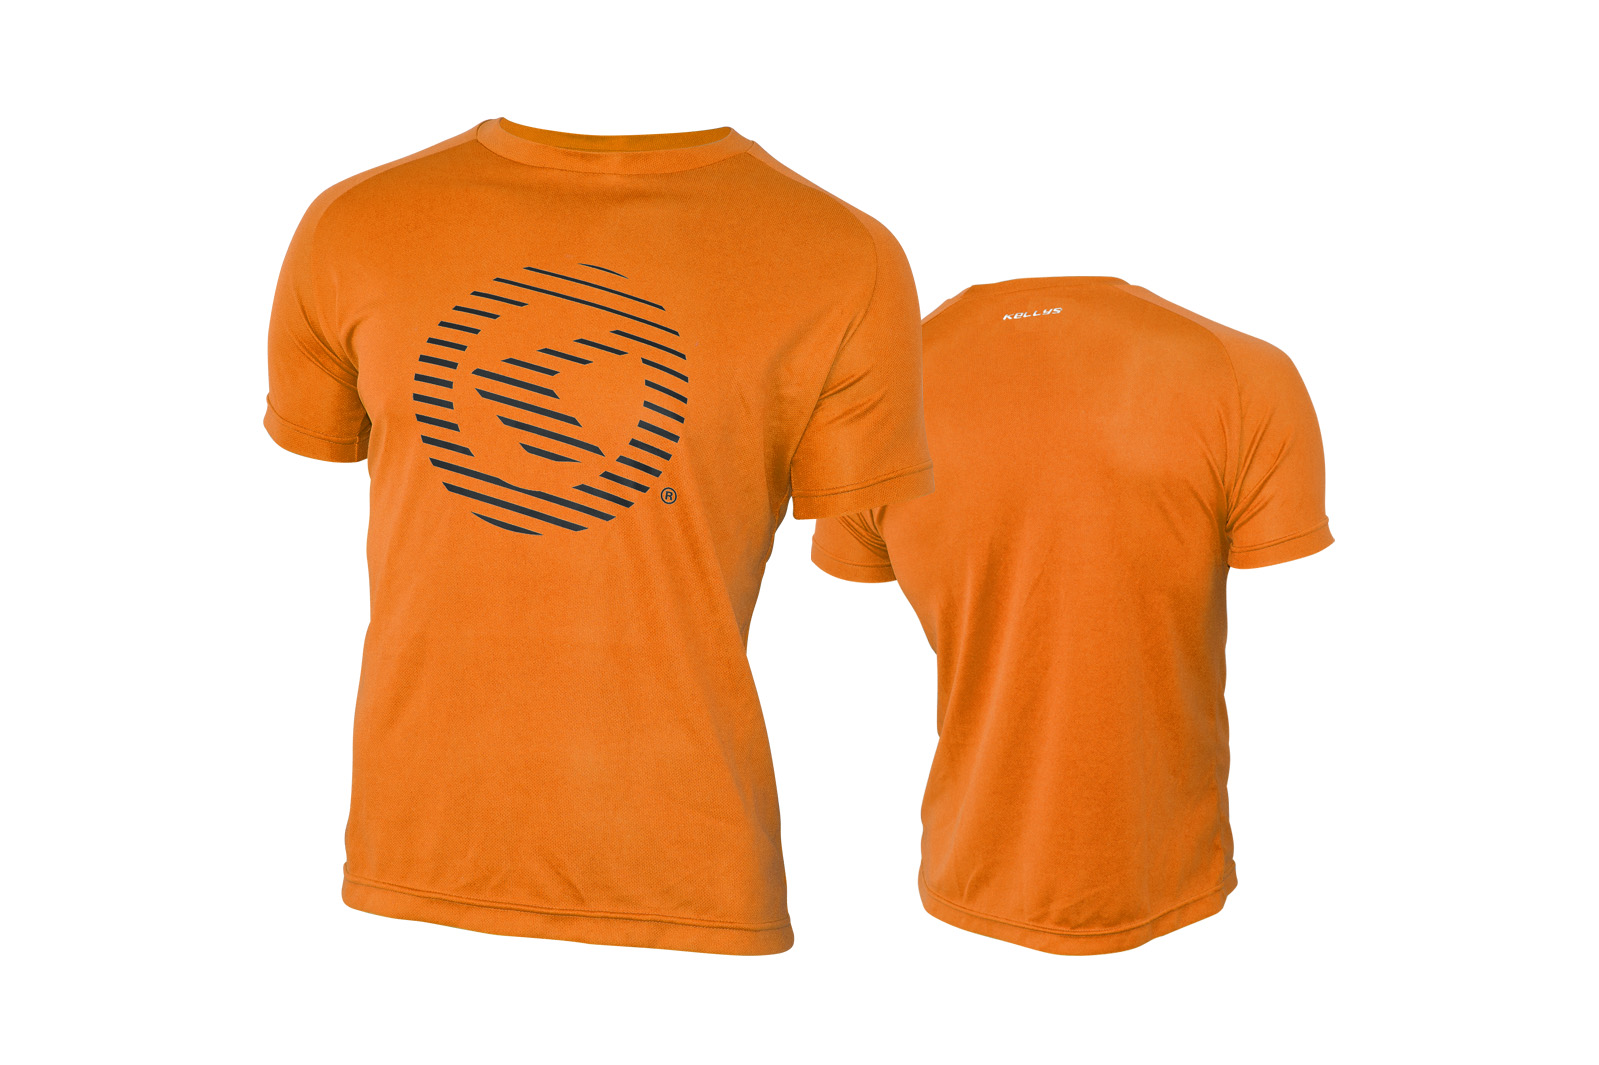 T-Shirt KELLYS ACTIVE orange - XXL - Mega Handelsgesellschaft